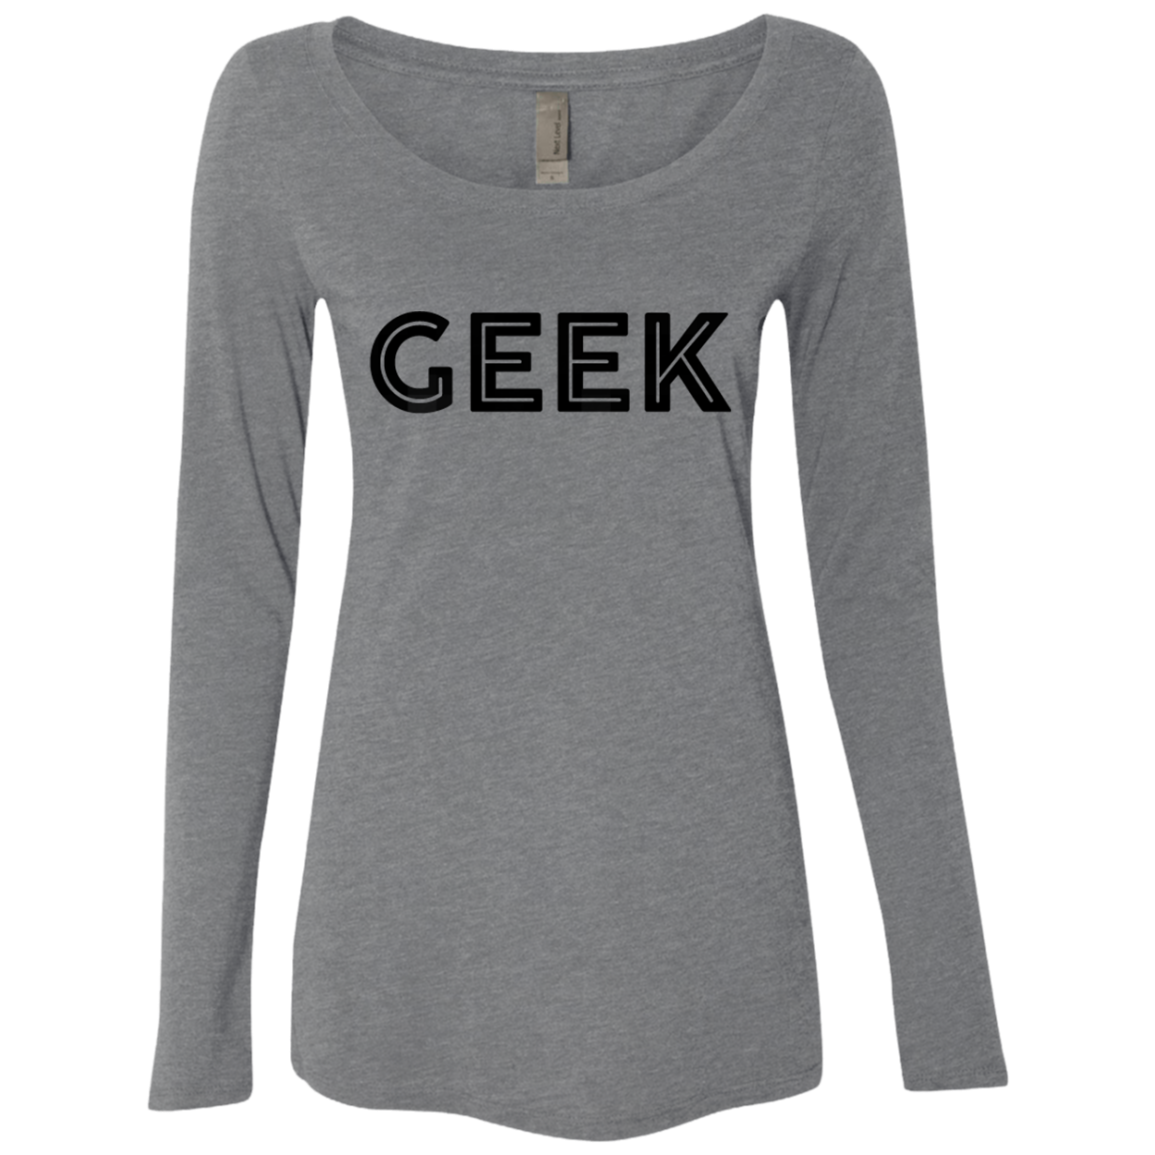 Geek Women's Long Sleeve Tee